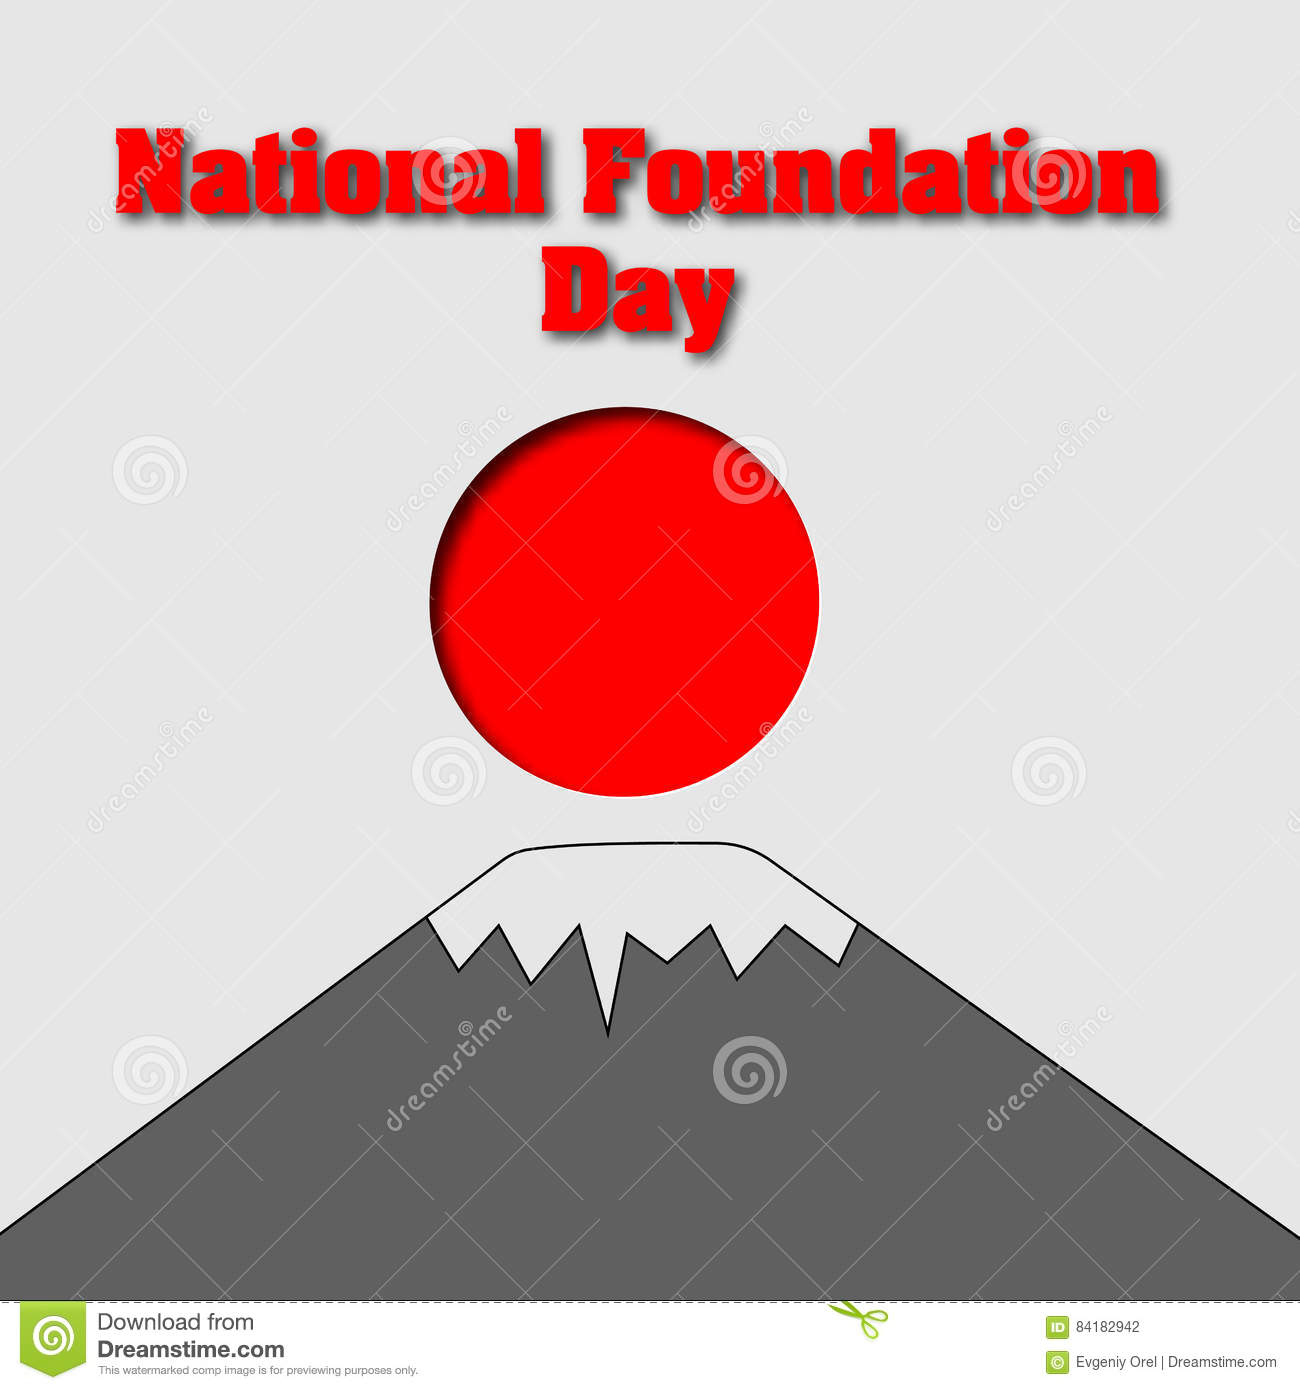 622dfa08b35 Card For National Foundation Day In Japan. Design With Text ...